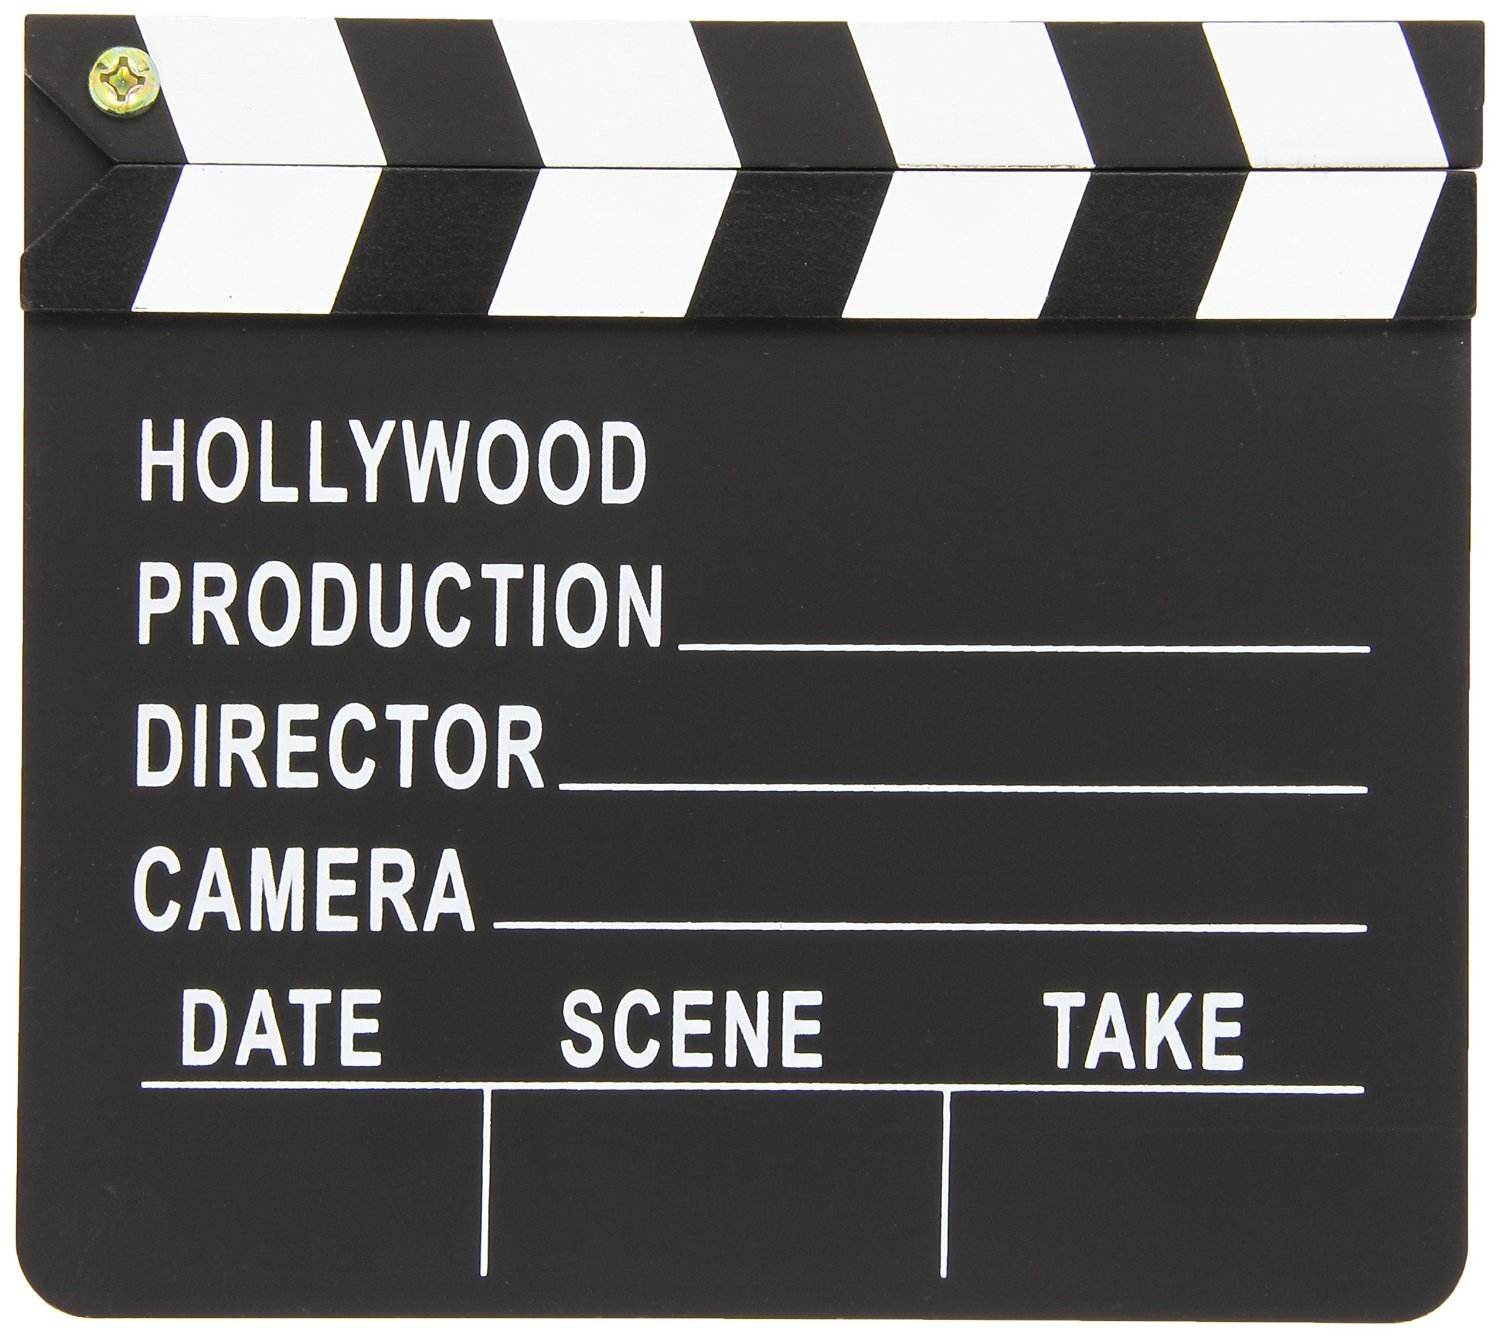 New Hollywood Revelation–Not Much Has Changed Regarding Consent in the Last 40 Years